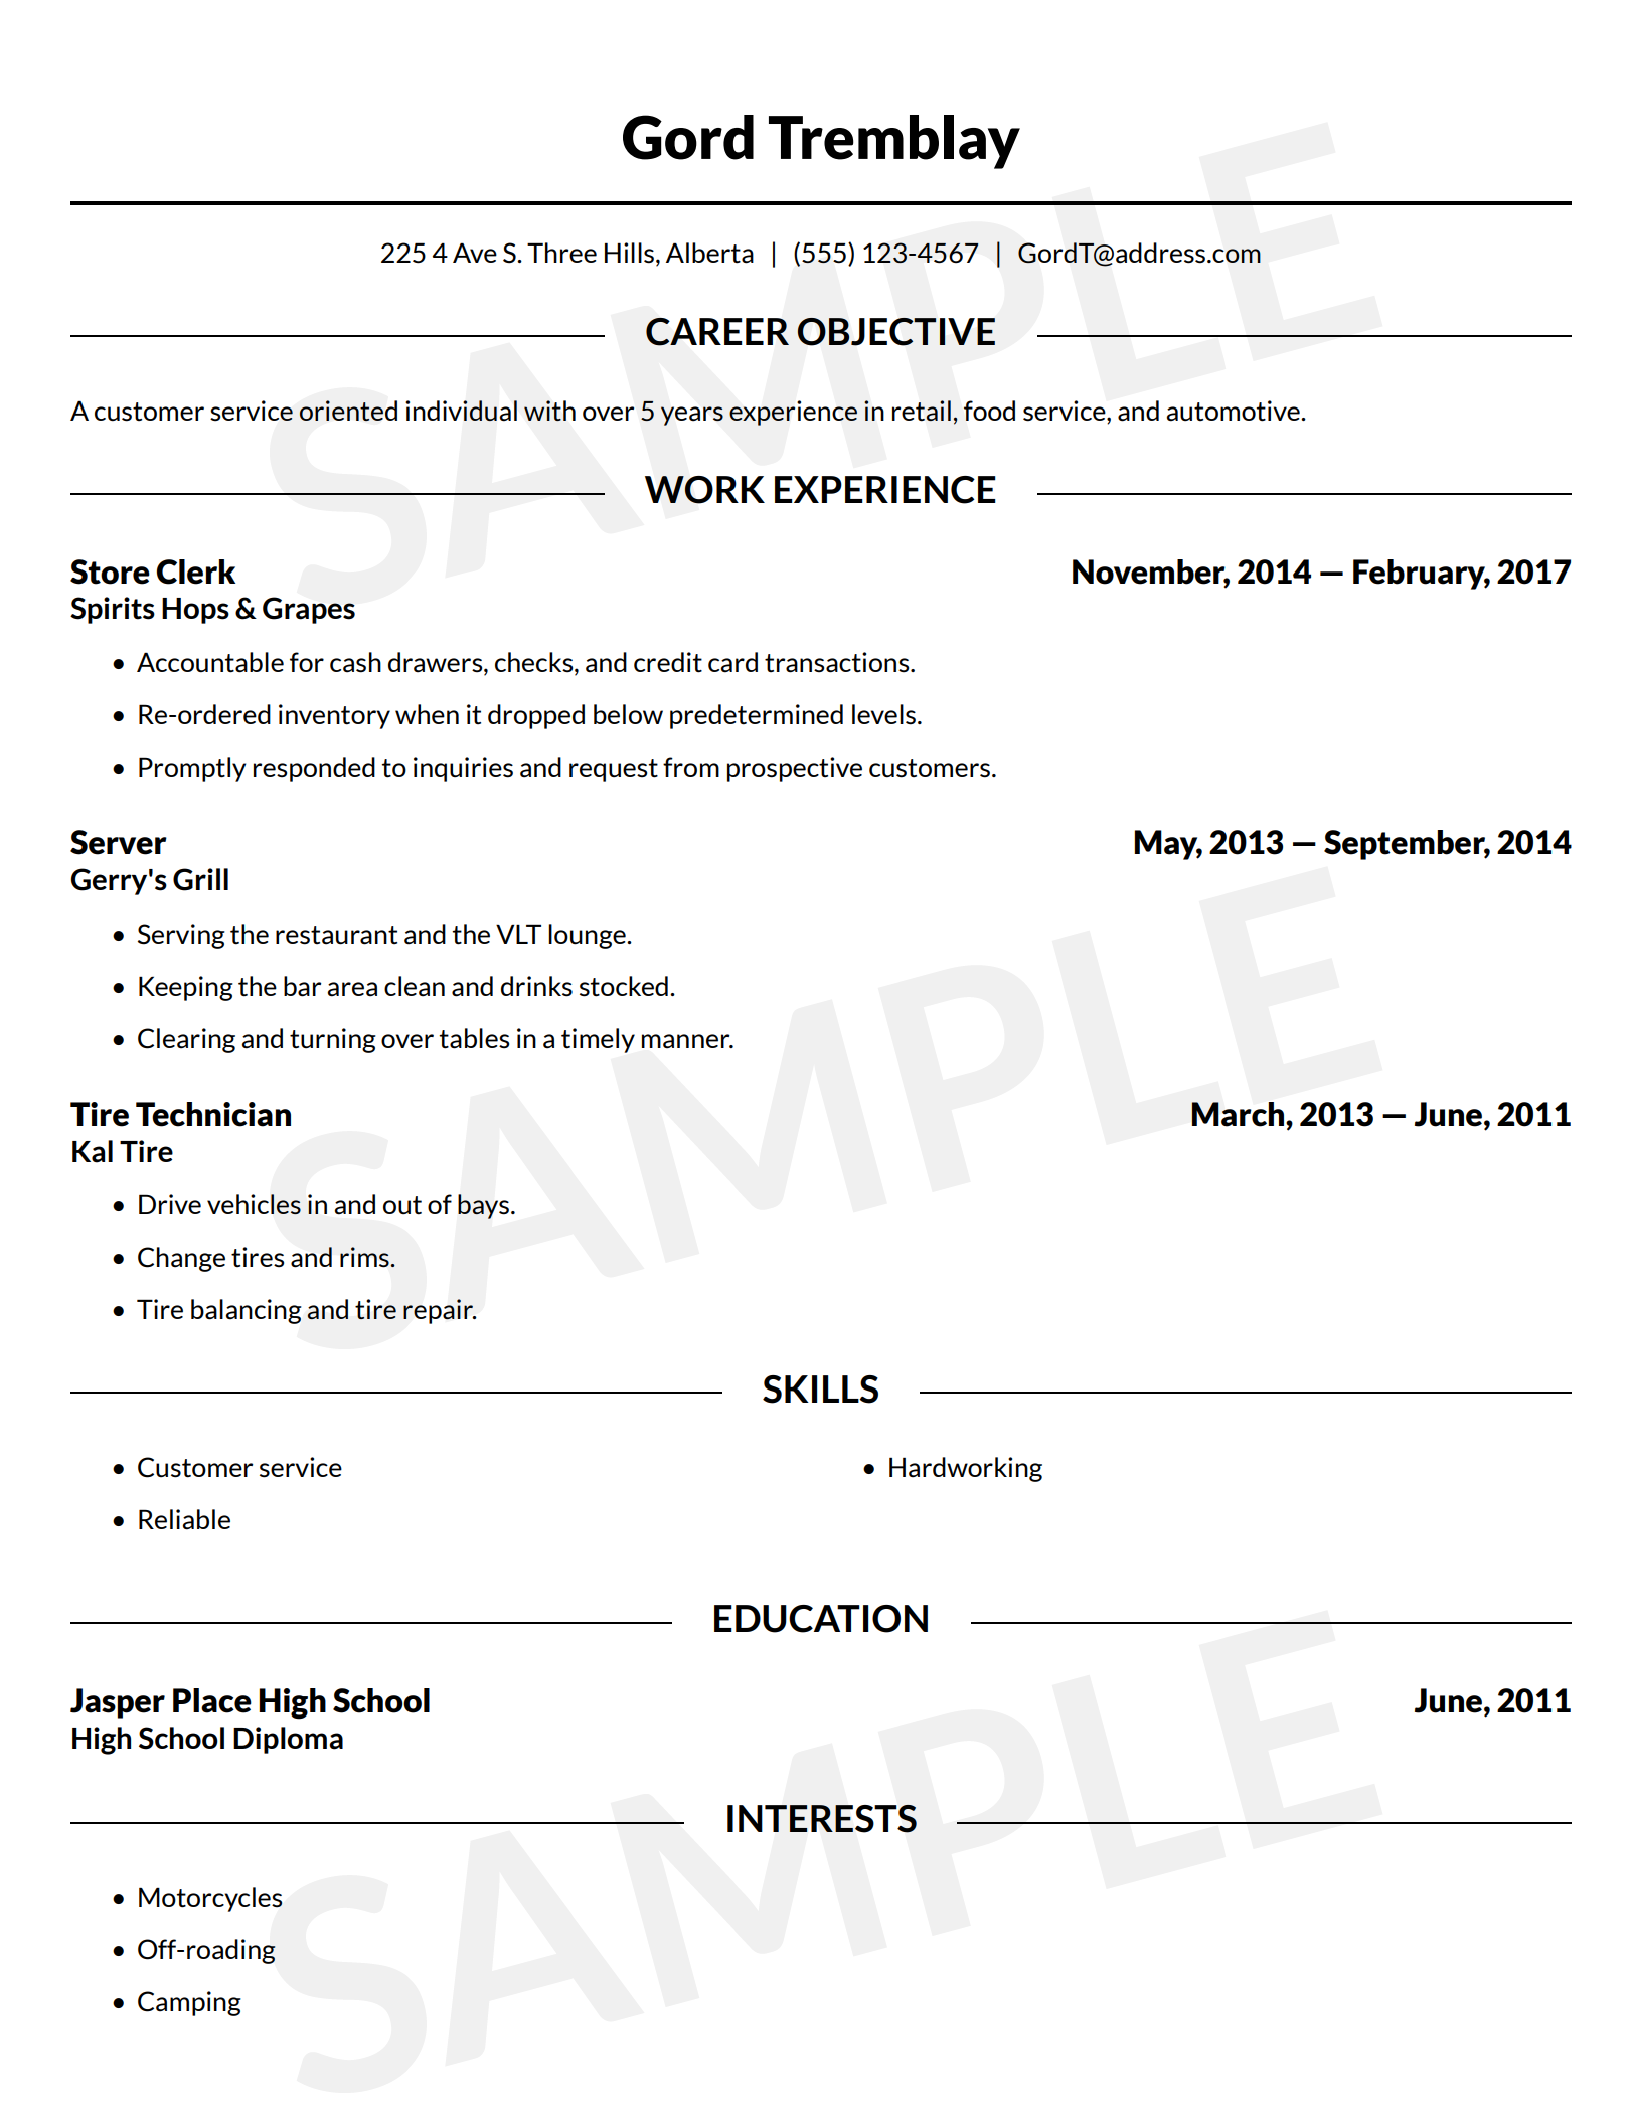 Resume Builder Free Online Resume Template Canada Lawdepot